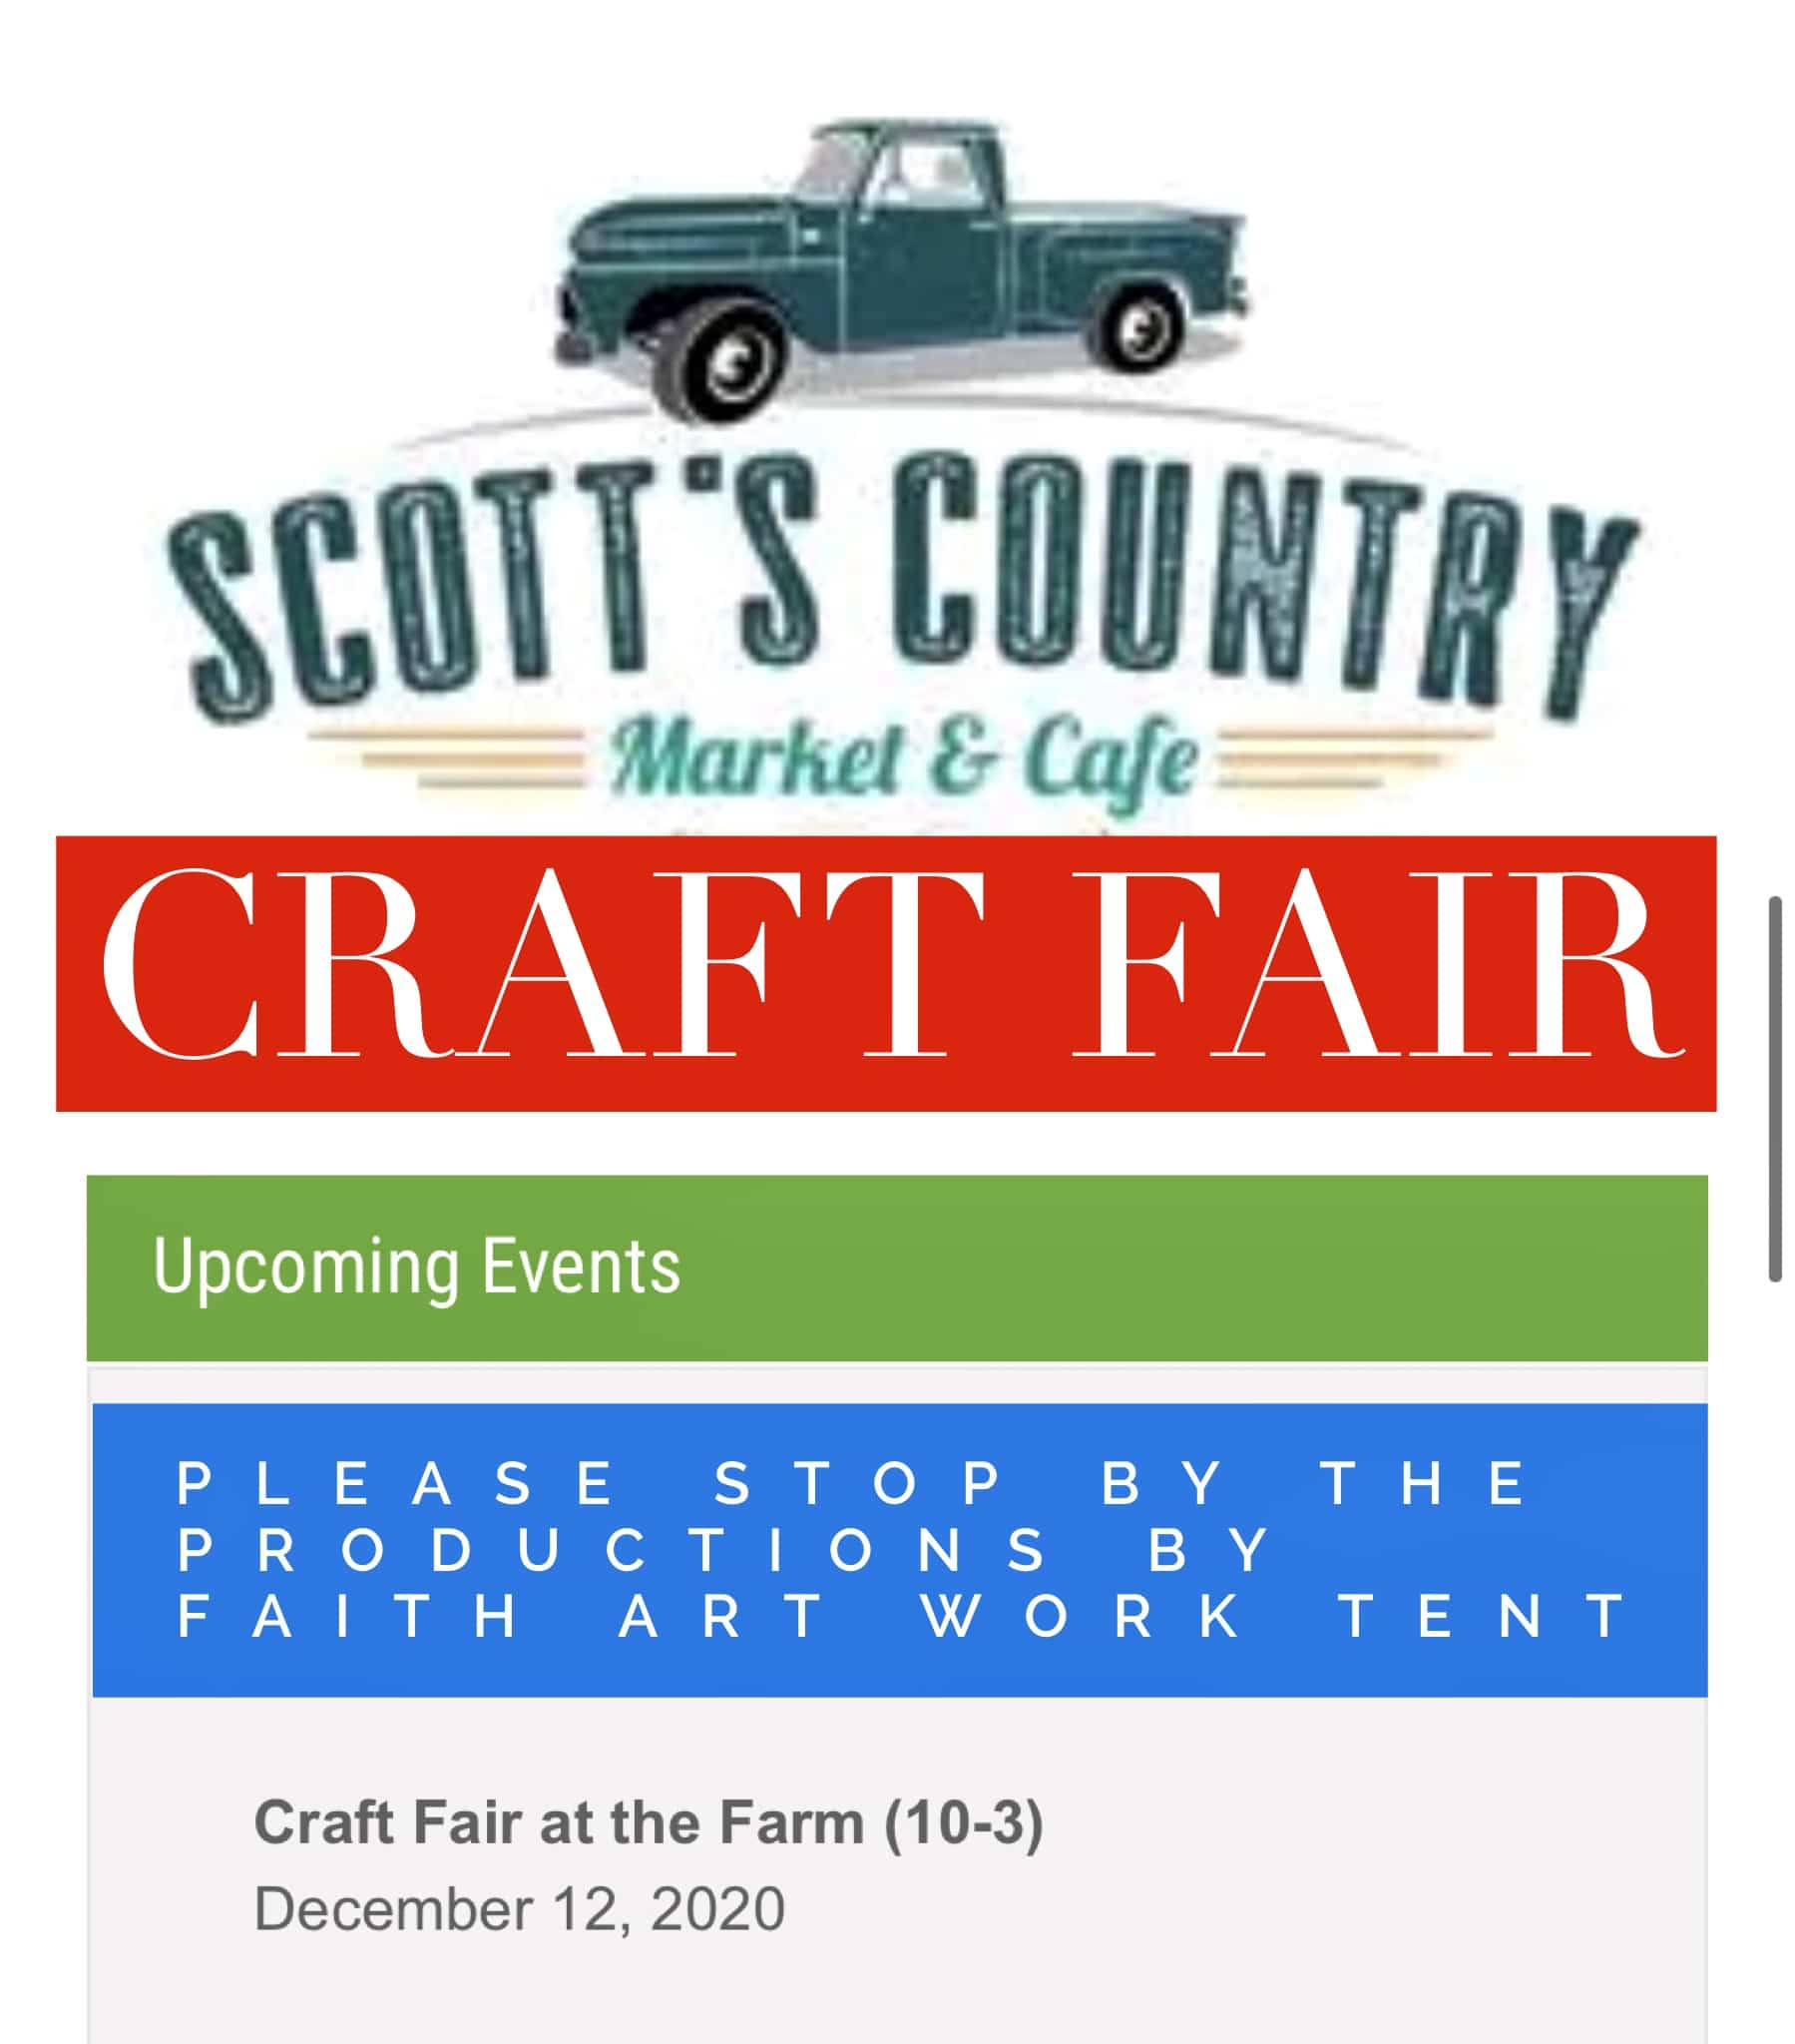 Craft Fair at the Farm